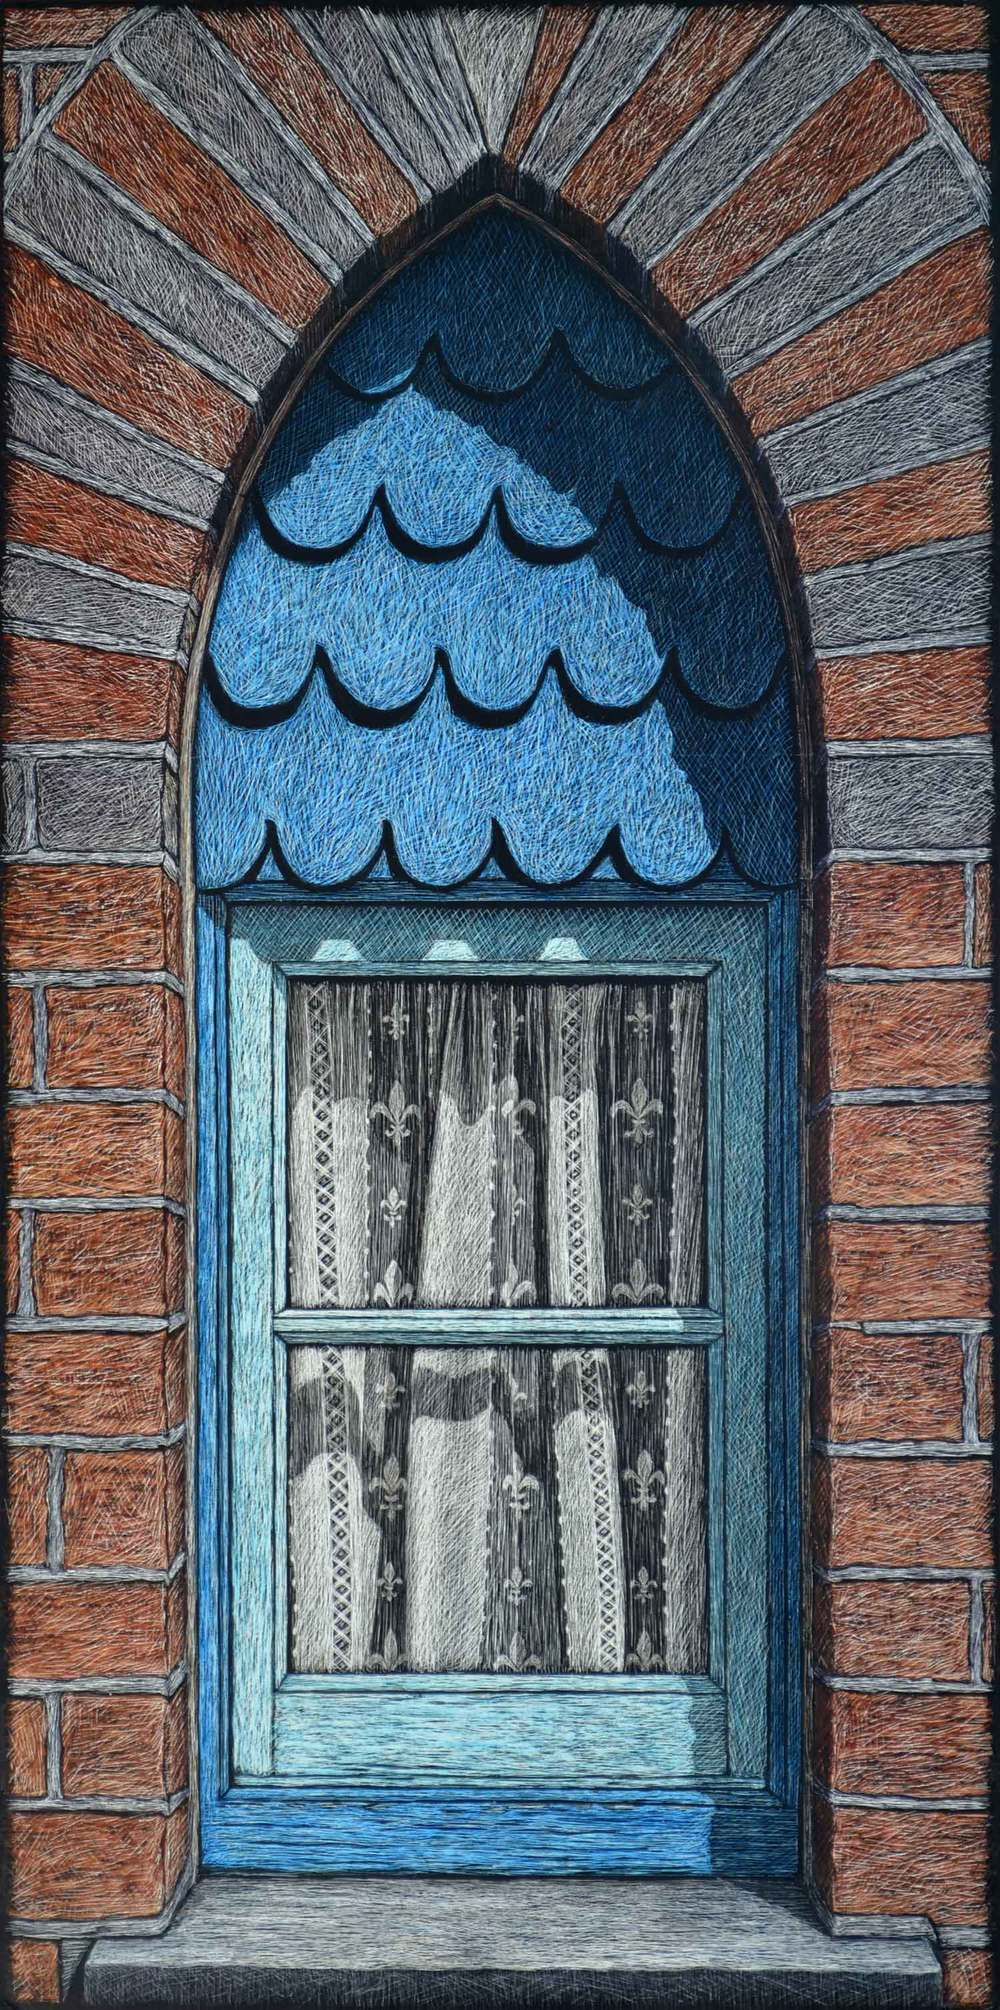 alms-house-window-rachel-newling.jpg